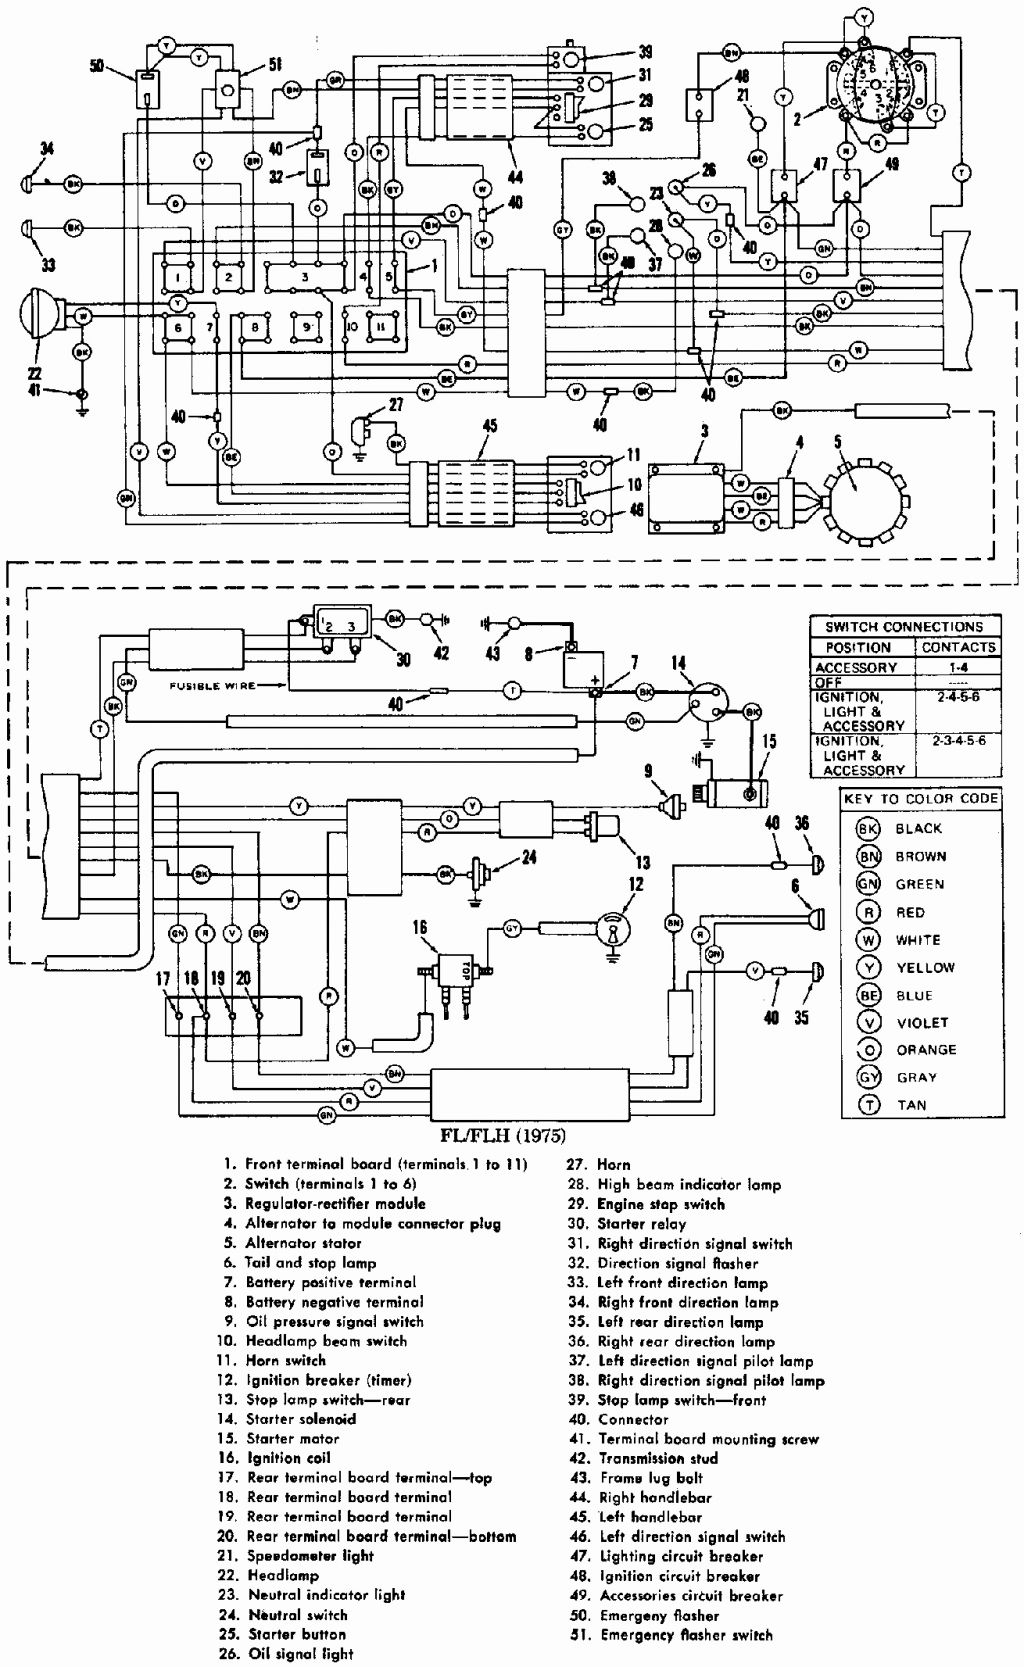 Wiring Harness Diagram 95 Flhr Harley - Wiring Diagram Variable on